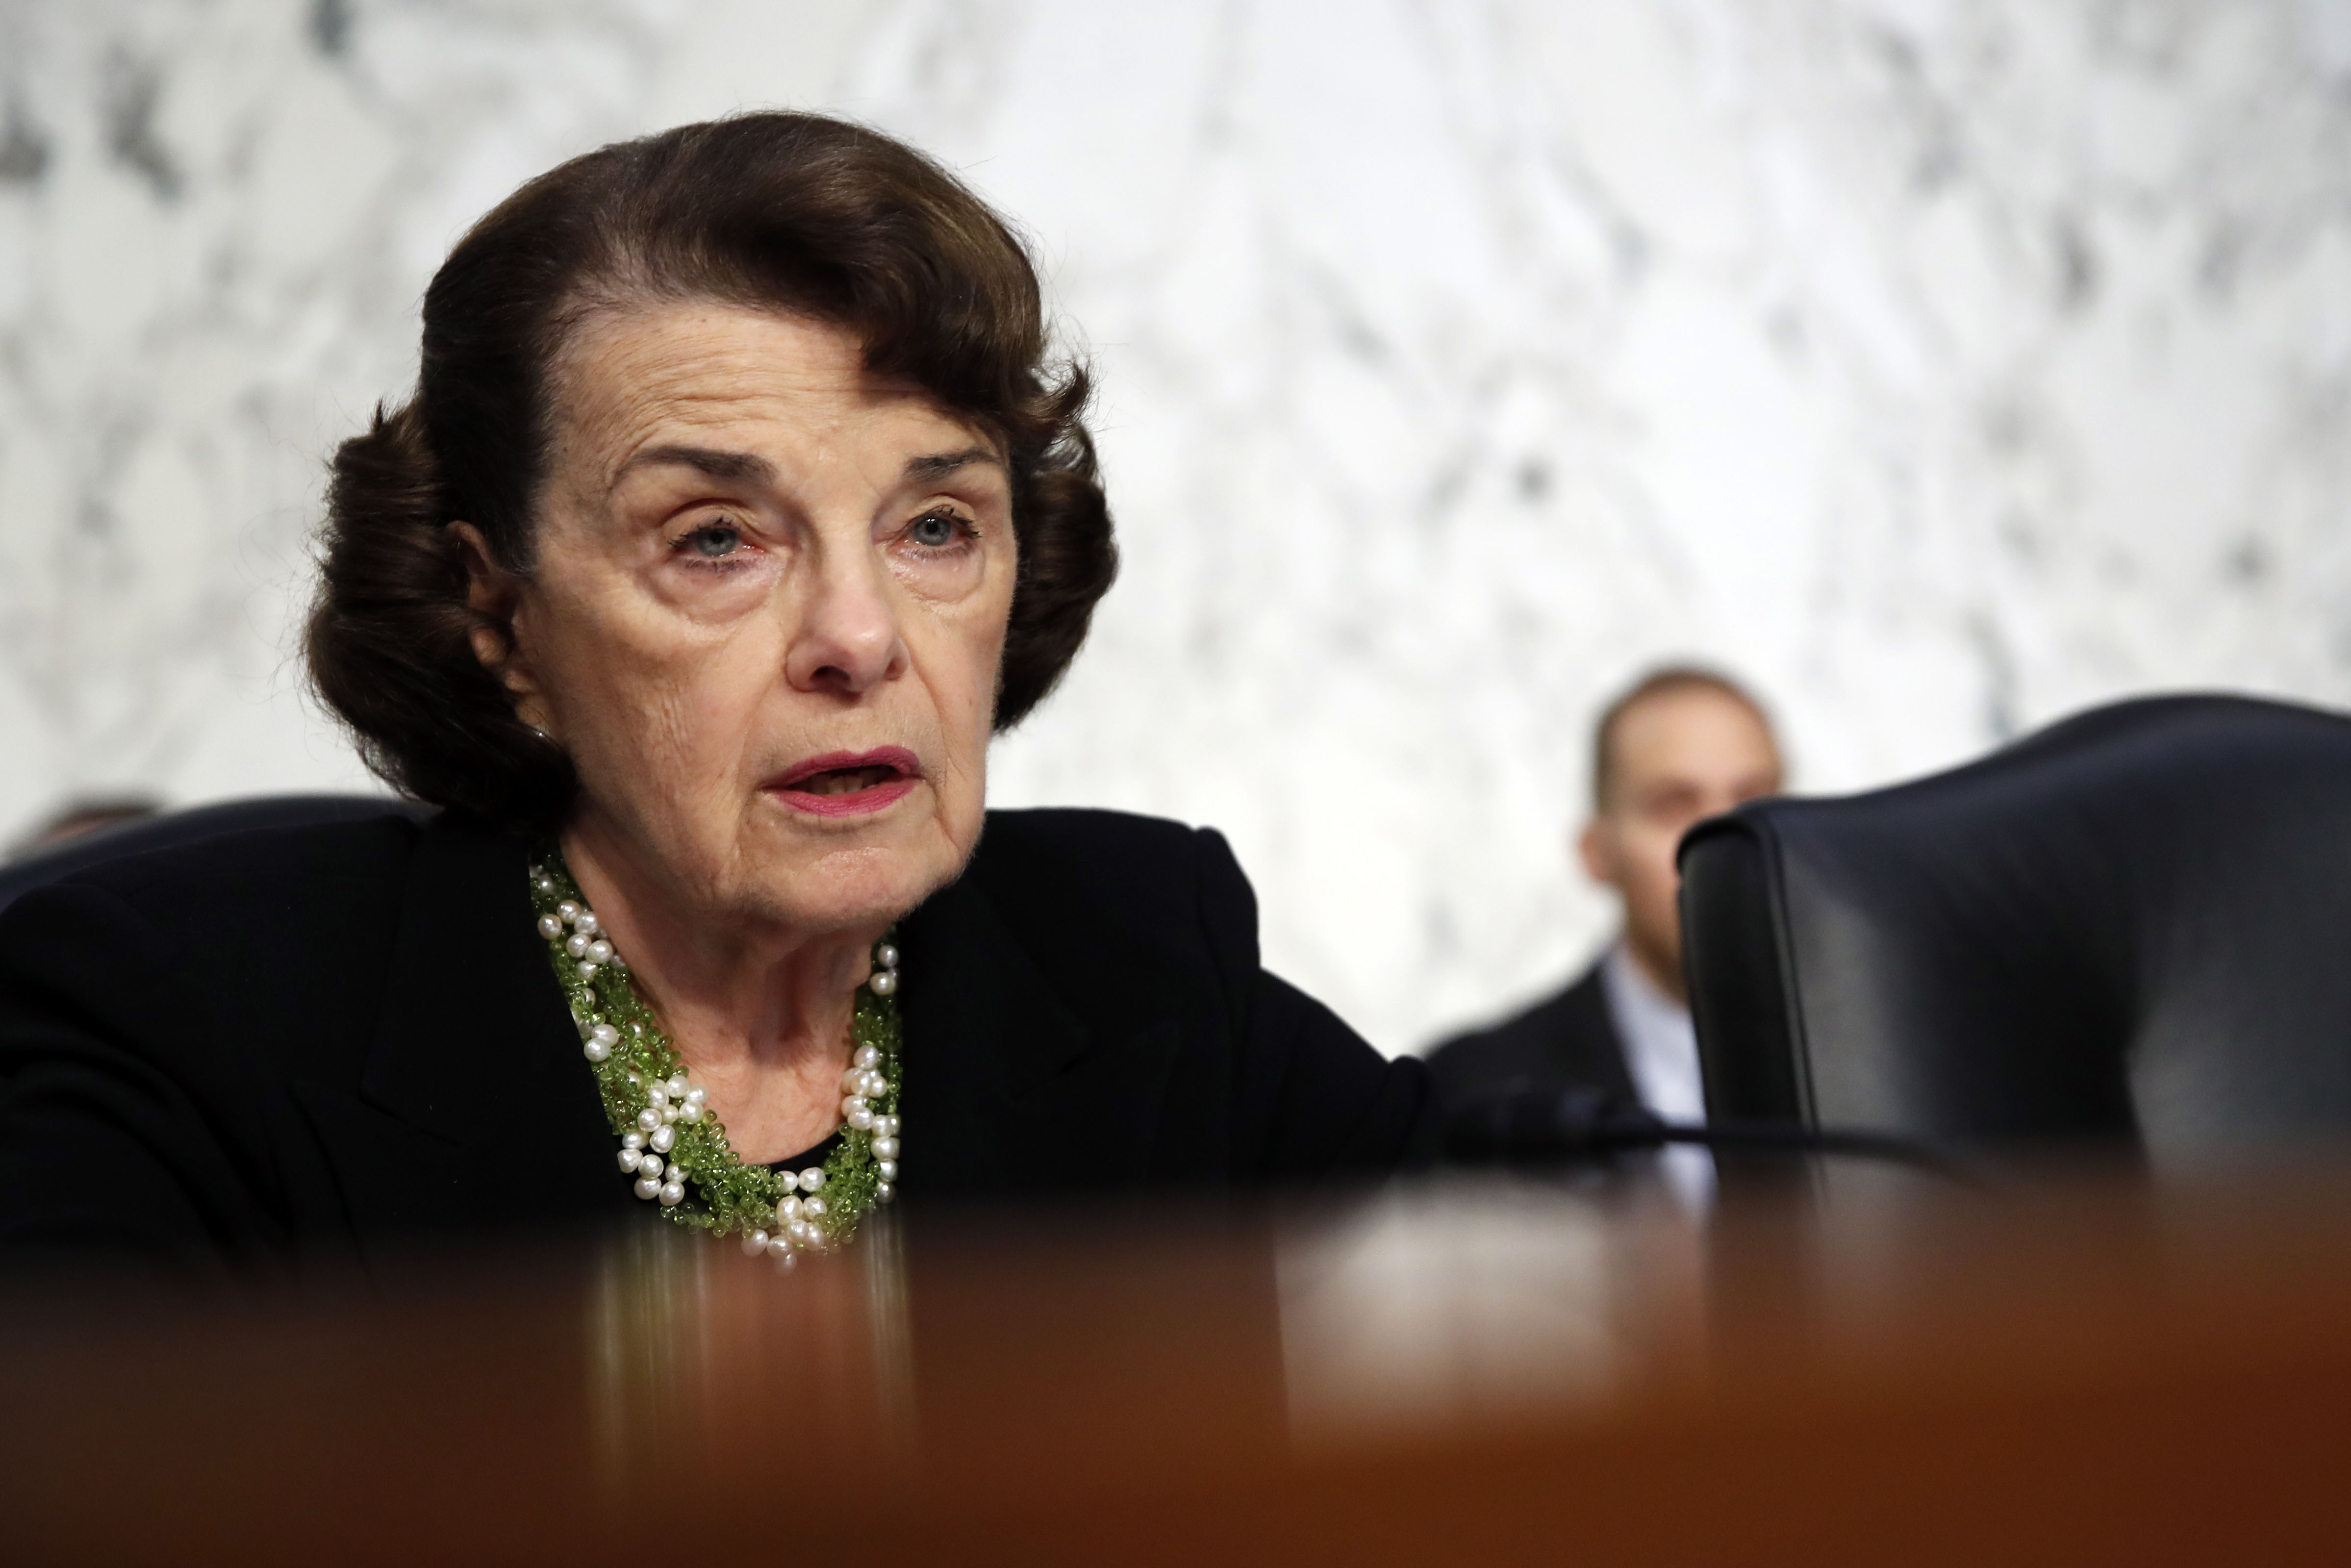 Feinstein Asks Feds To Investigate Kavanaugh Claims In